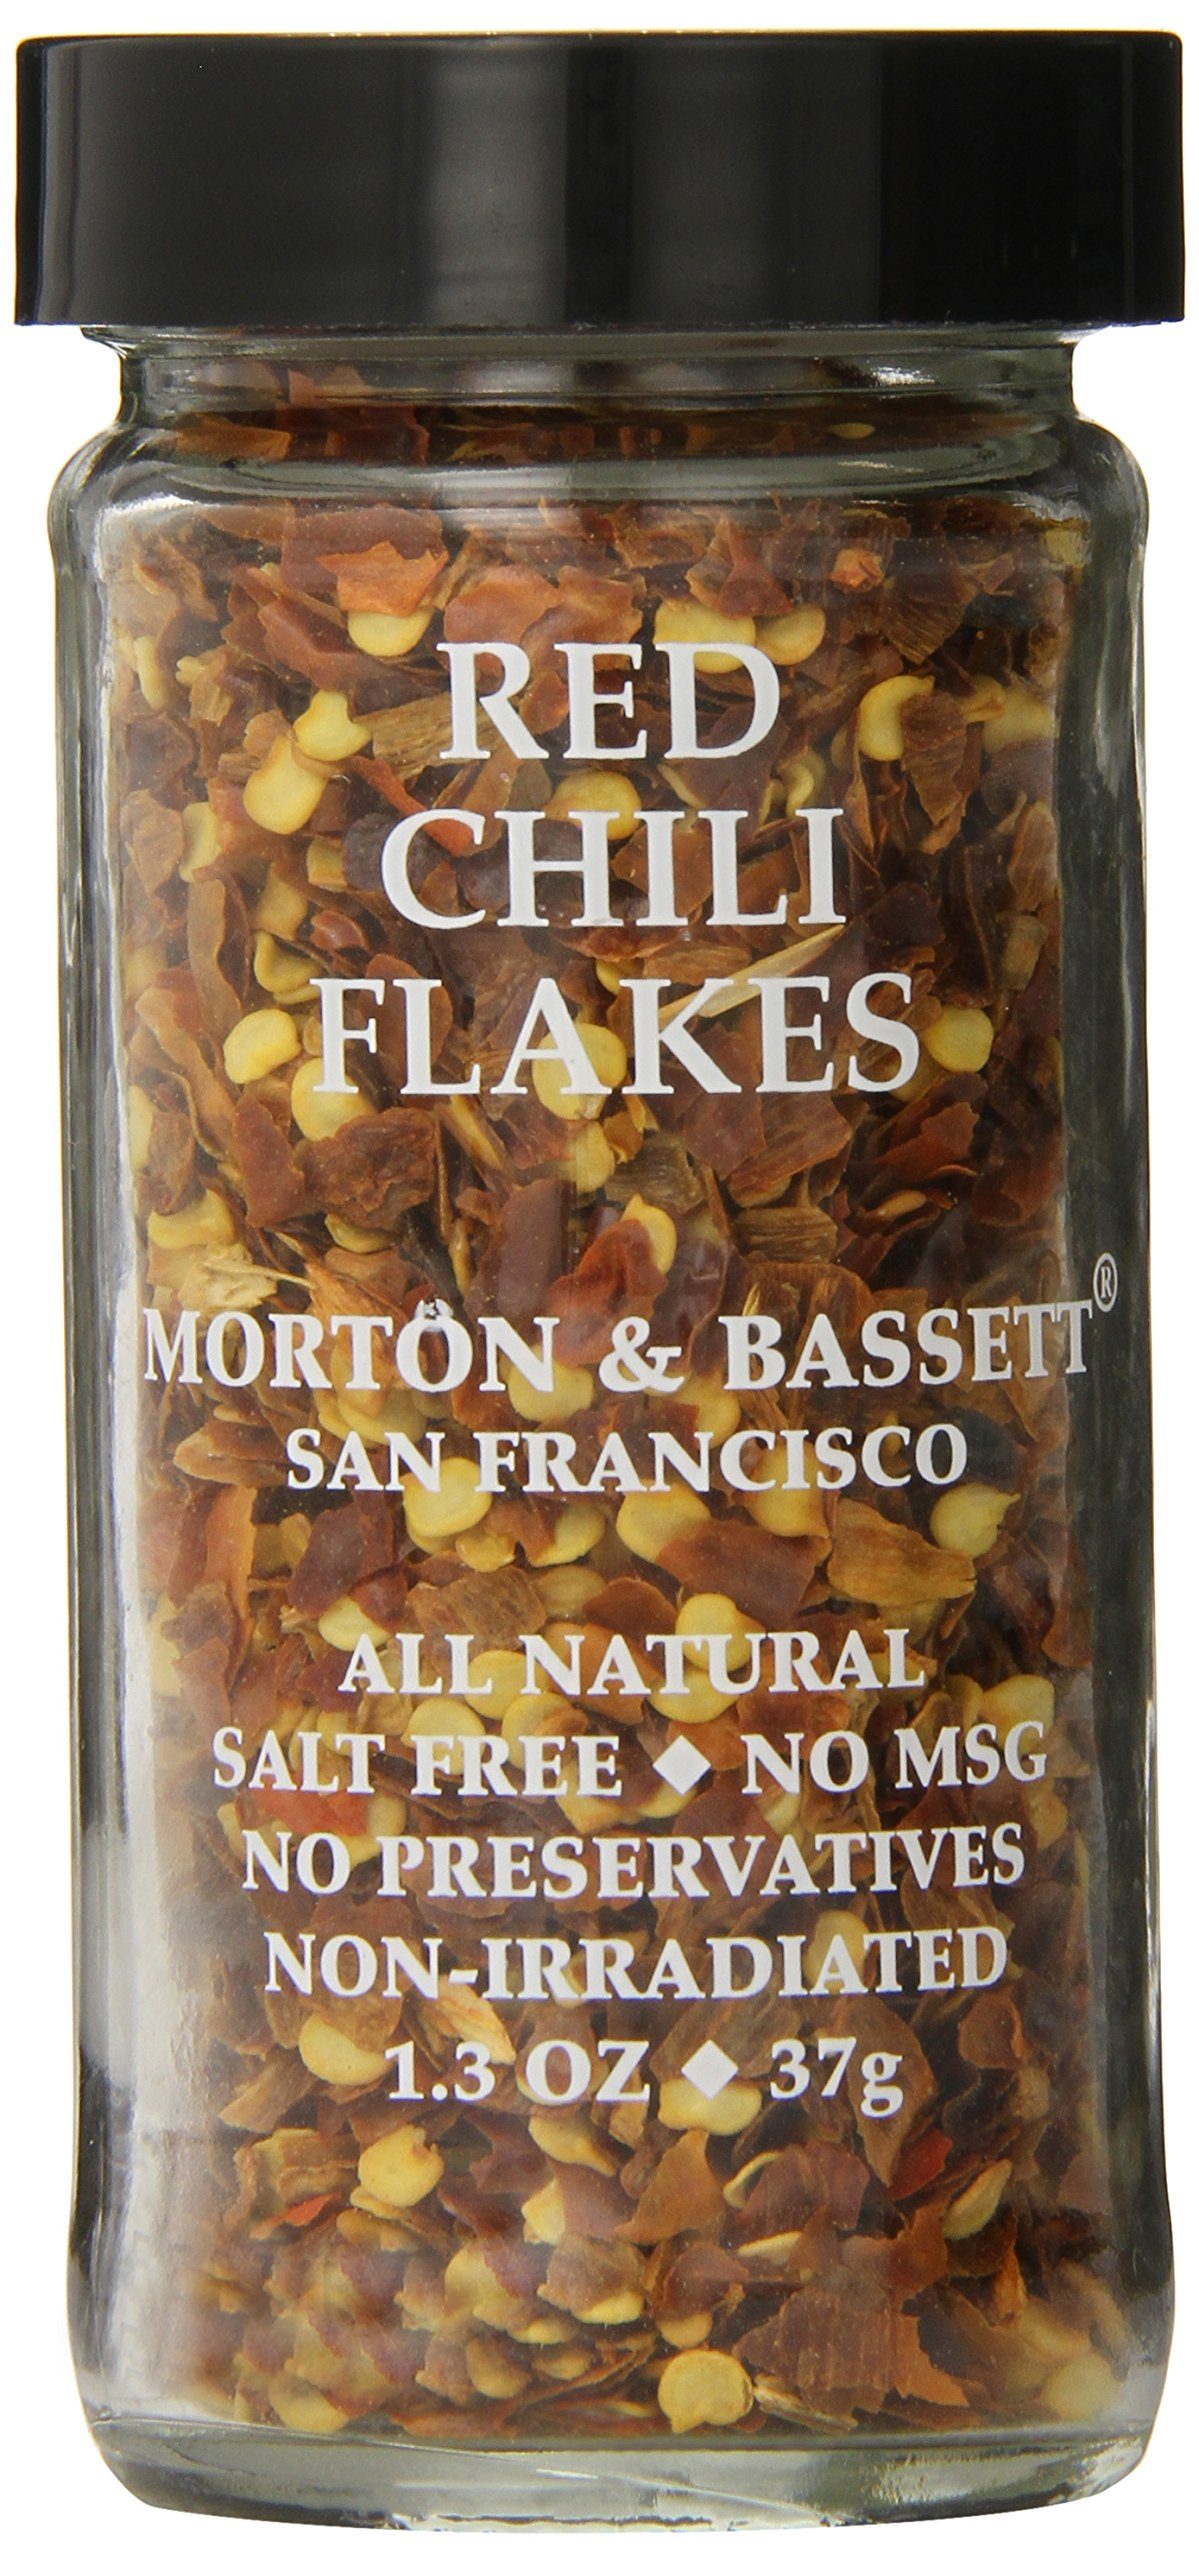 Morton & Basset Spices, Red Chili Flakes, 1.3 Ounce (Pack of 3)